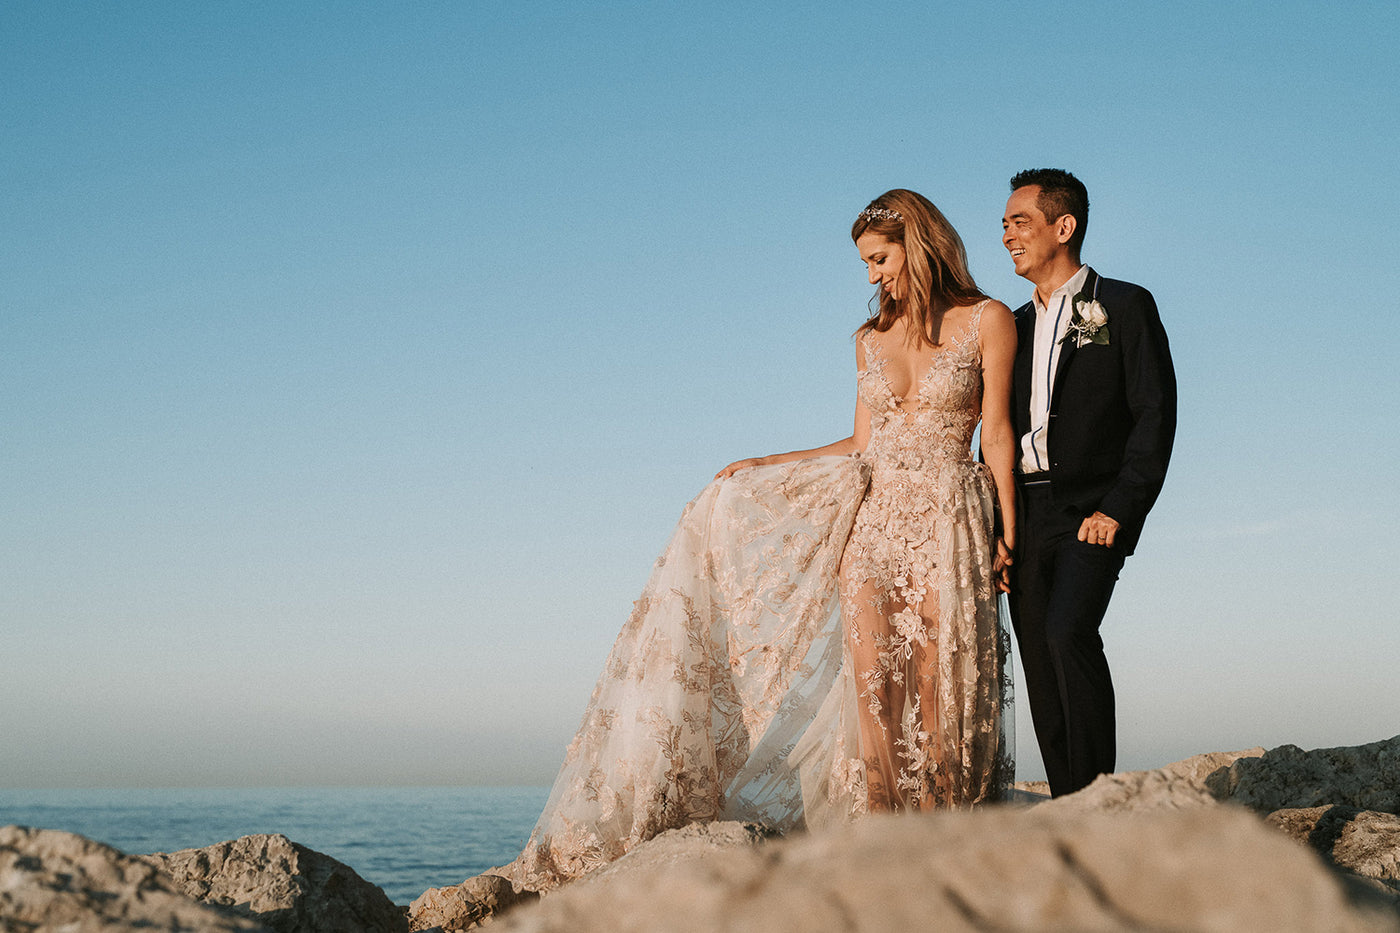 REAL BRIDE CAROLINA MARRIES IN GALIA LAHAV FOR HER DESTINATION WEDDING IN ITALY